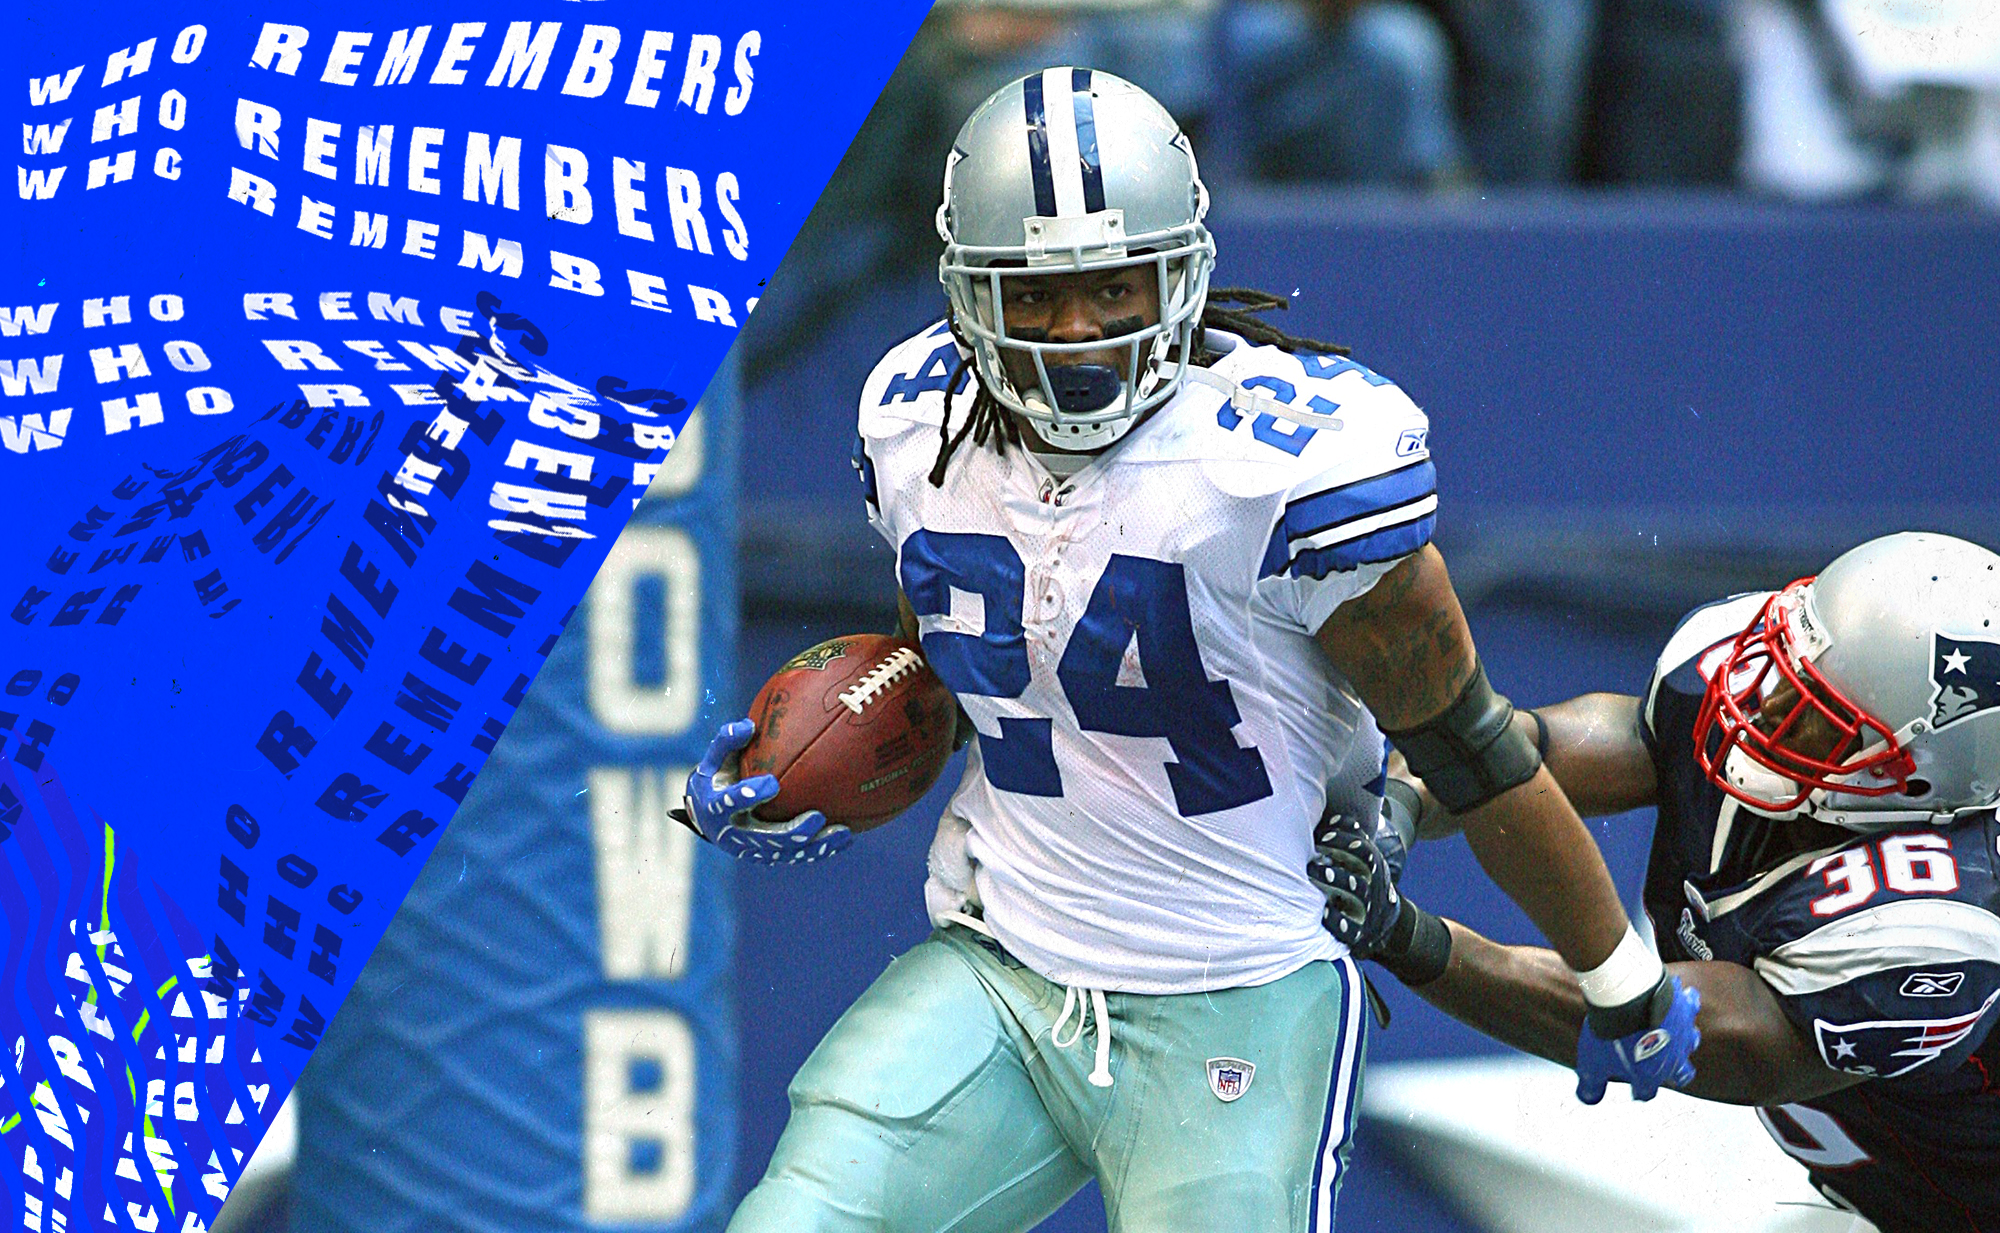 Marion Barber's best run in his NFL career gained just 2 yards